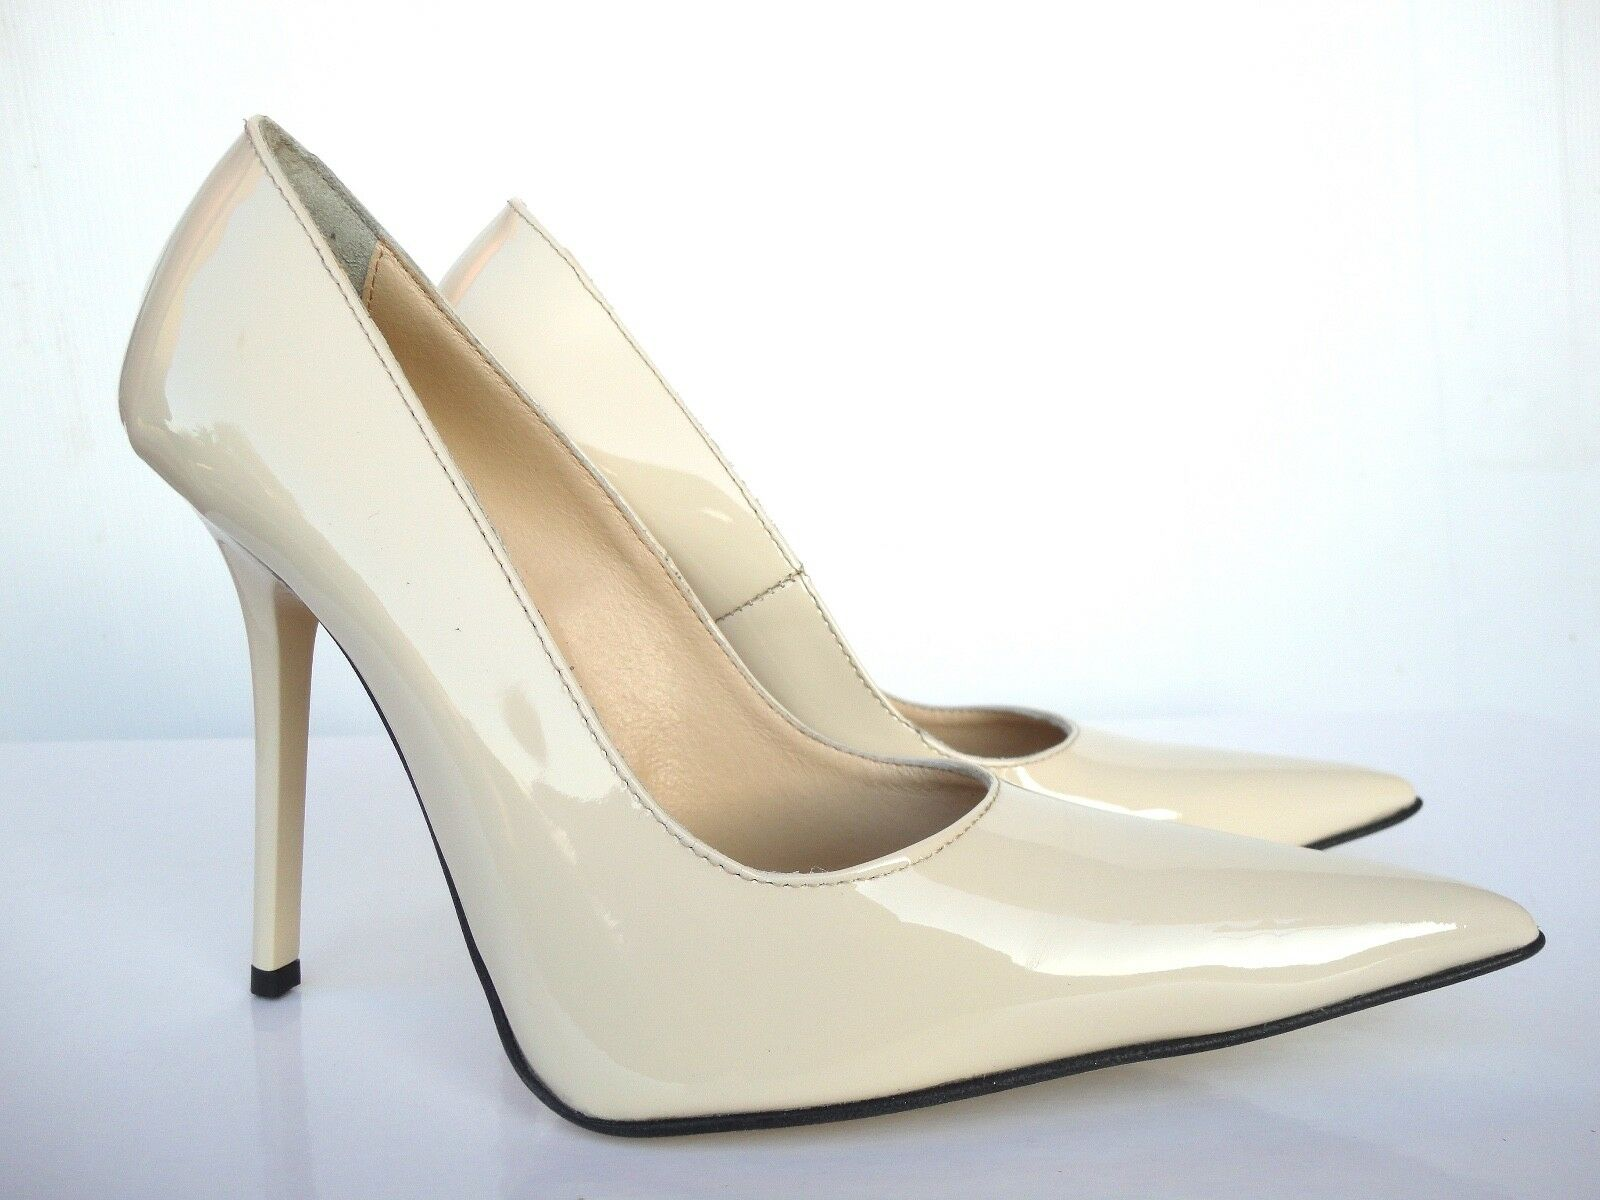 Giohel  tacón alto Pointy Toe pumps zapatos Leather decolte nude beige 38